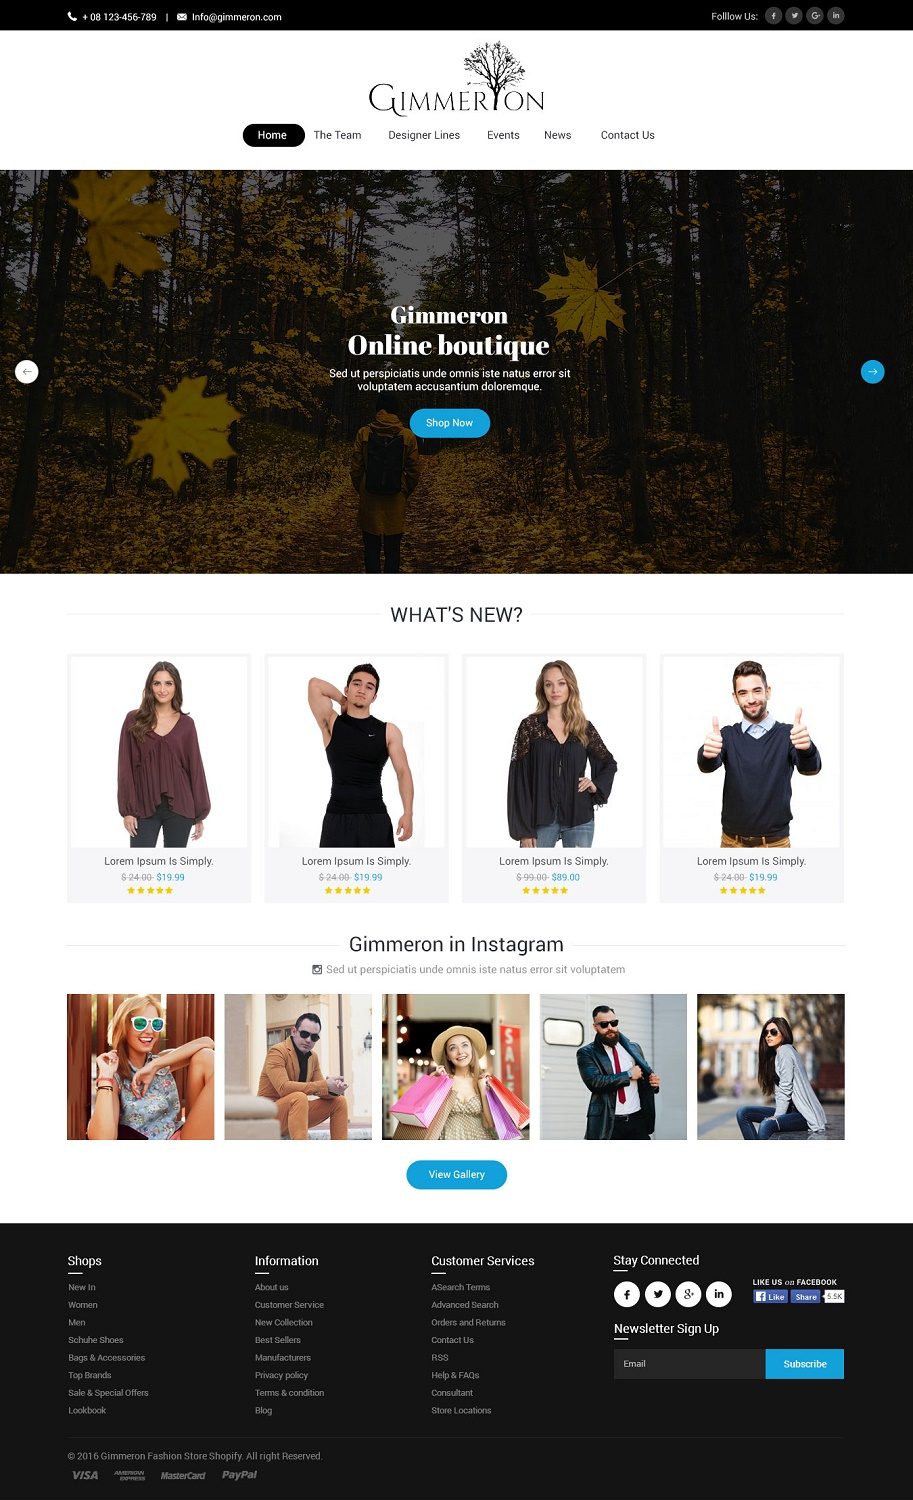 Elegant Playful Fashion Web Design For A Company By Zxsolutions Design 12848108